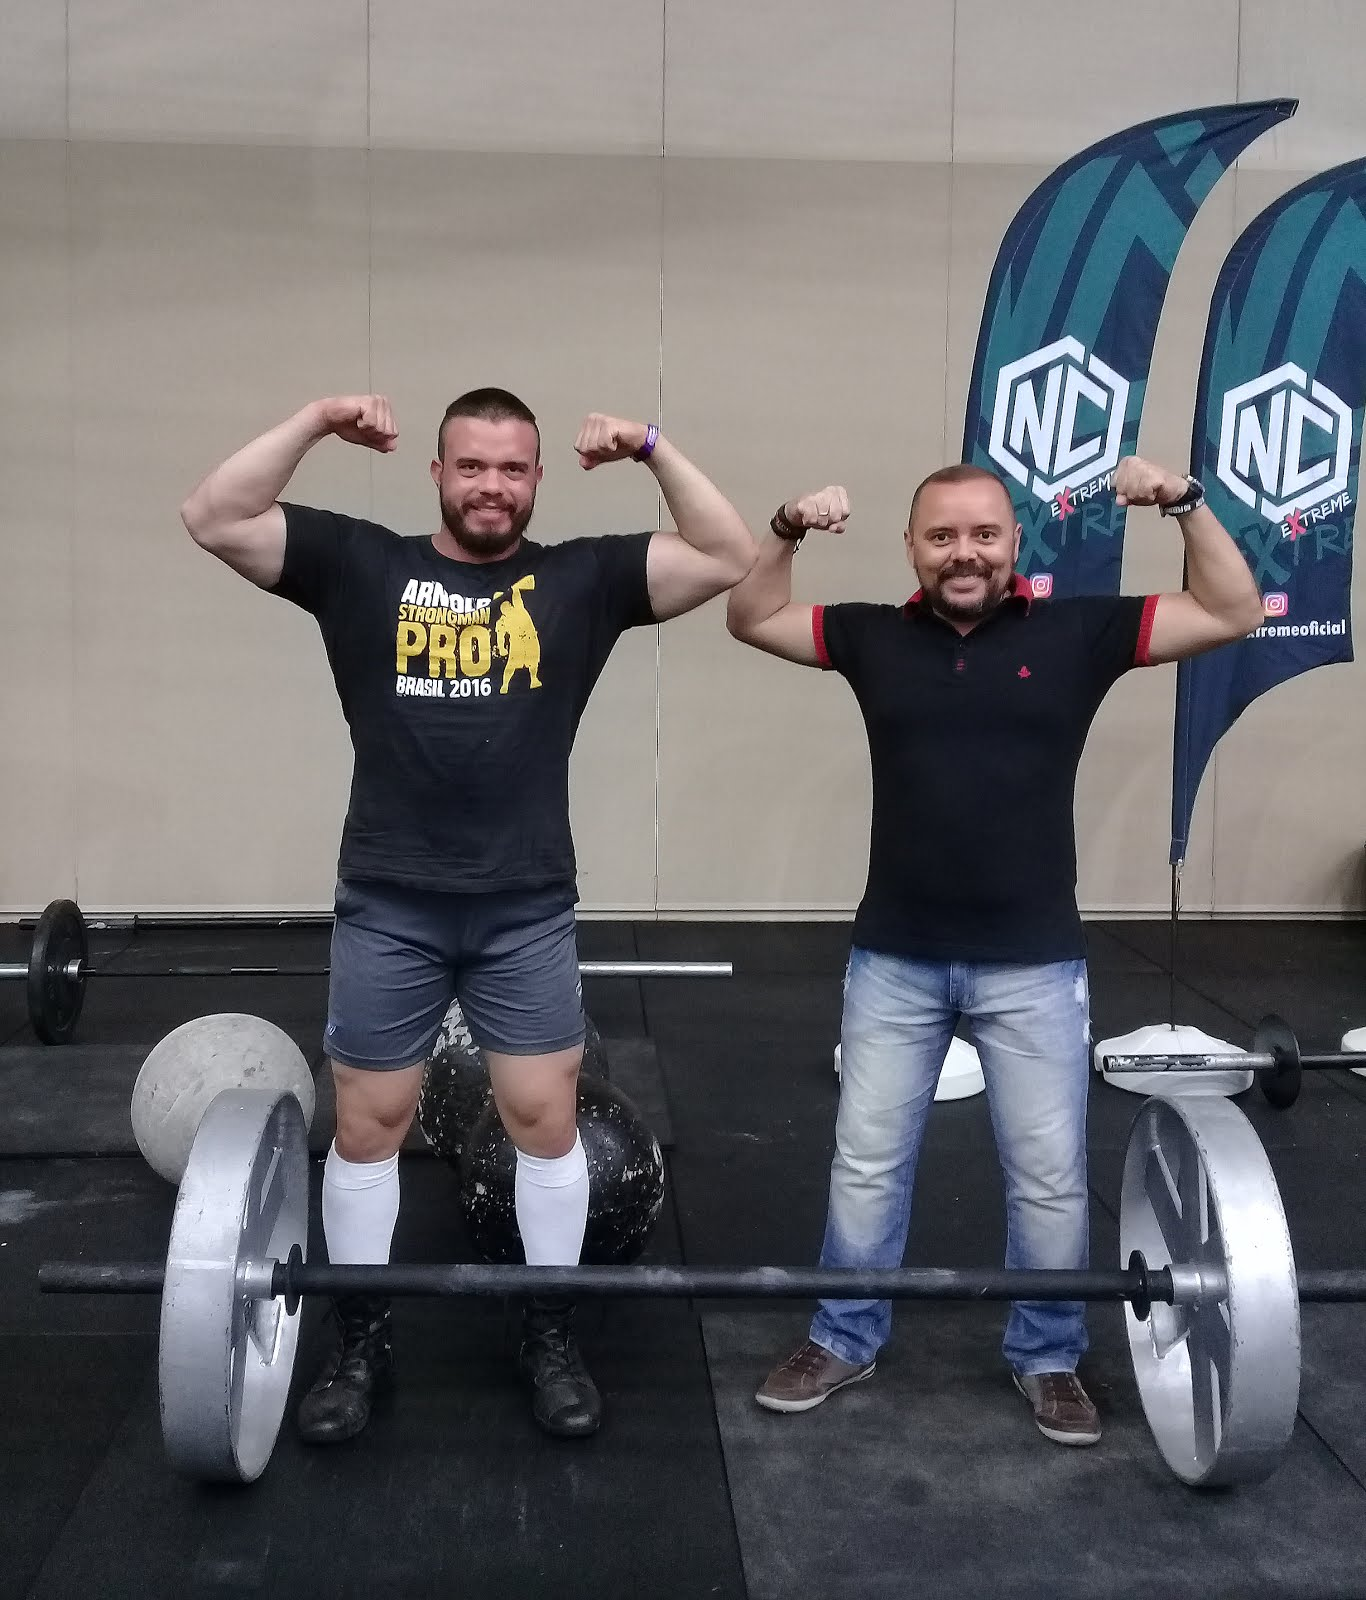 Com o atleta Ataide do Strongman